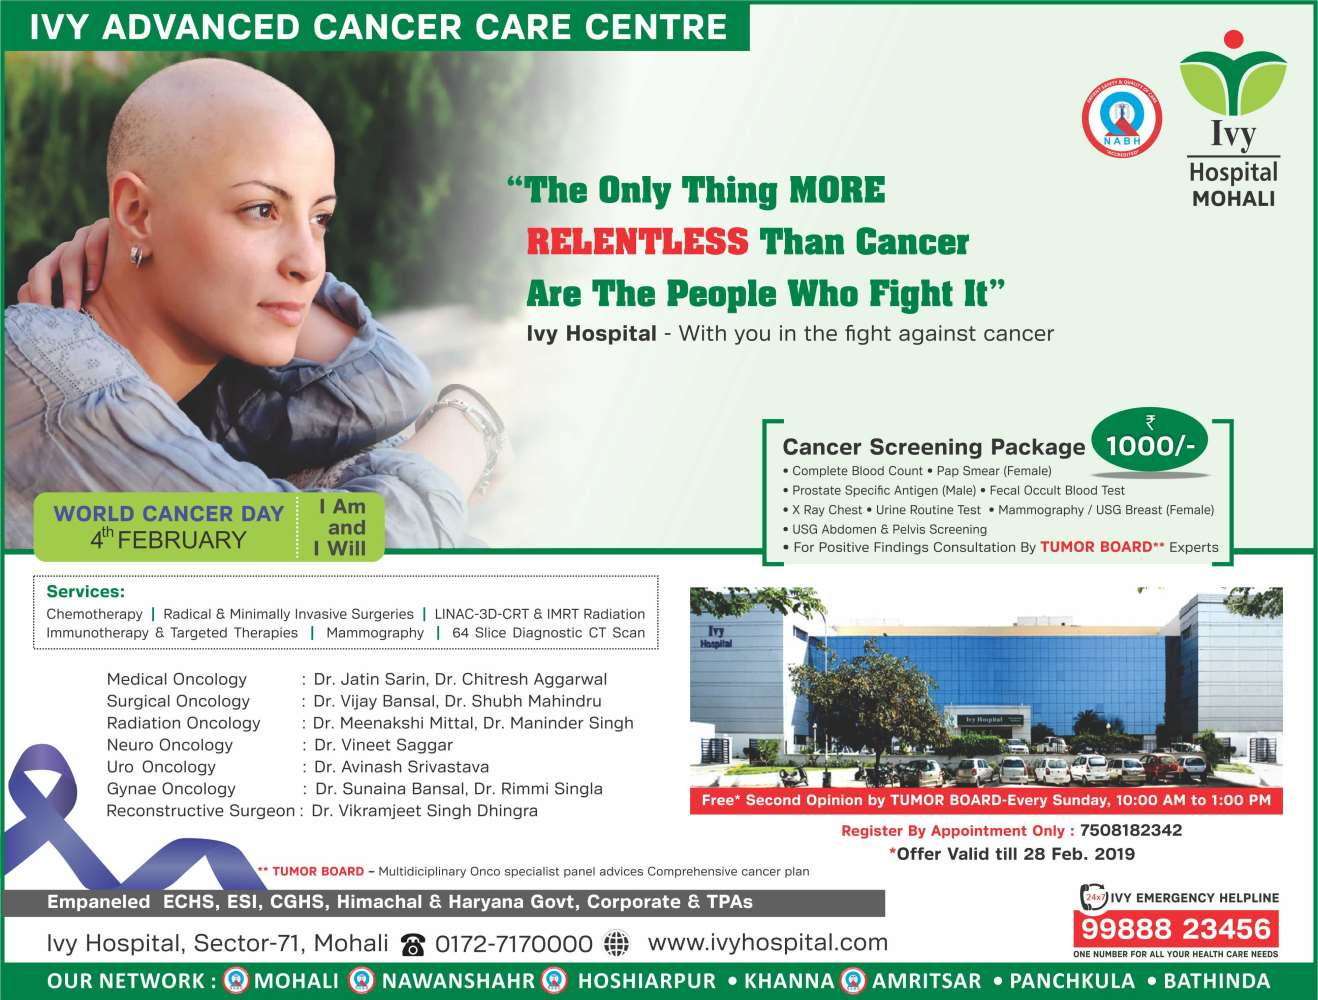 IVY Advanced Cancer Care Center